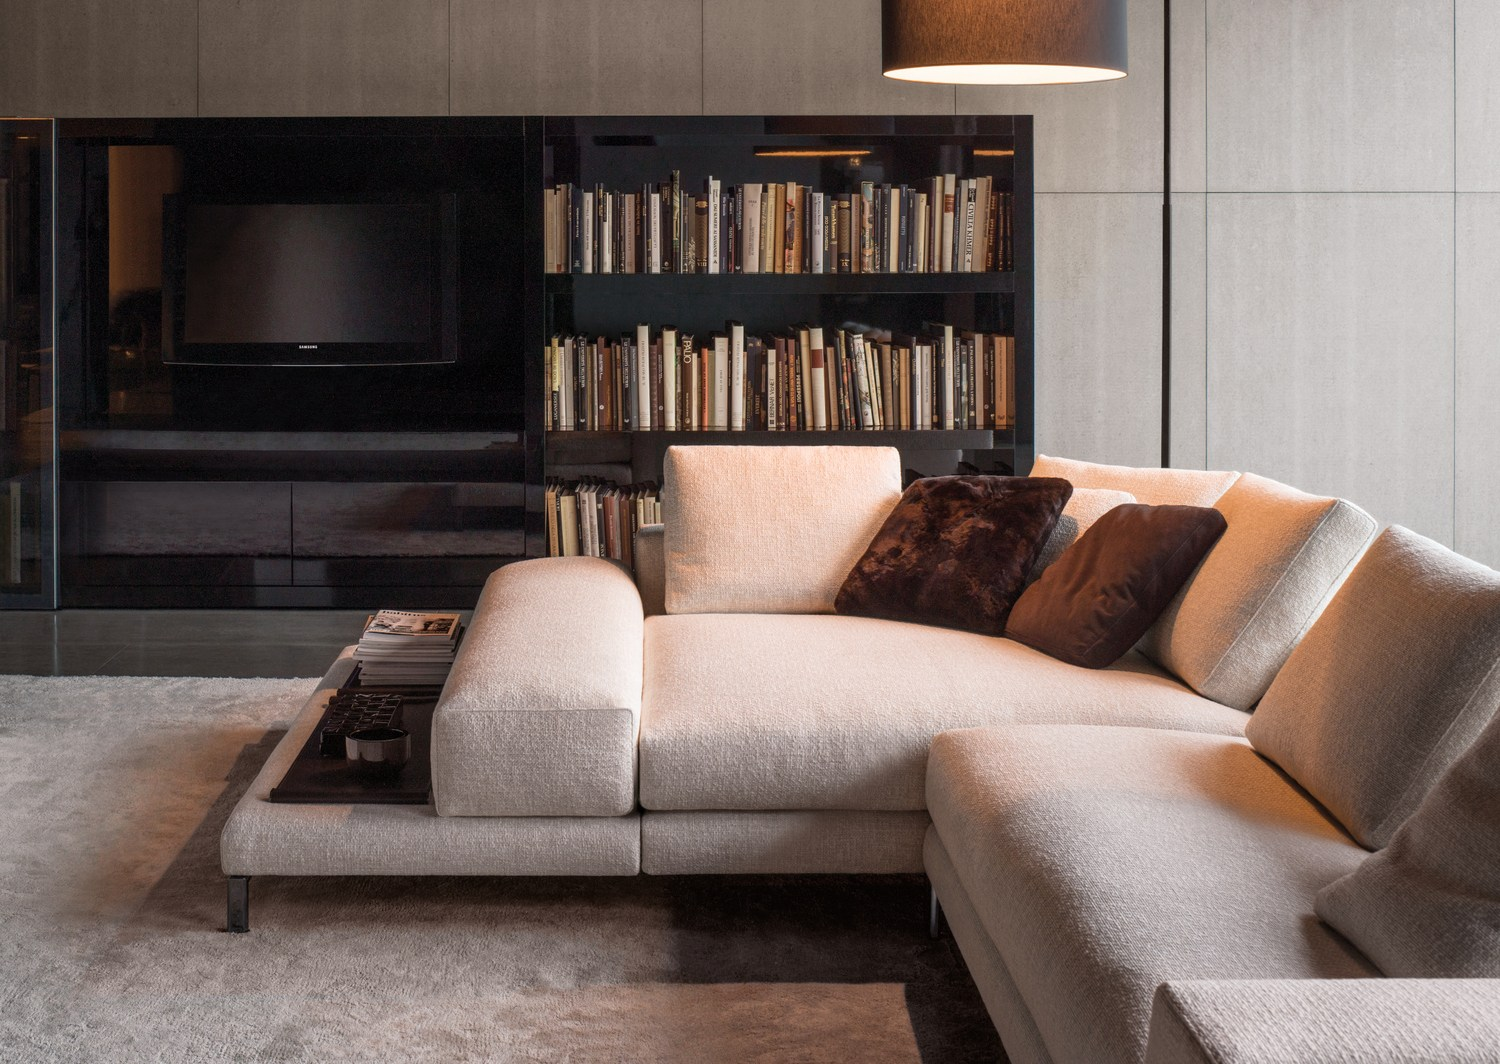 HAMILTON ISLANDS By Minotti